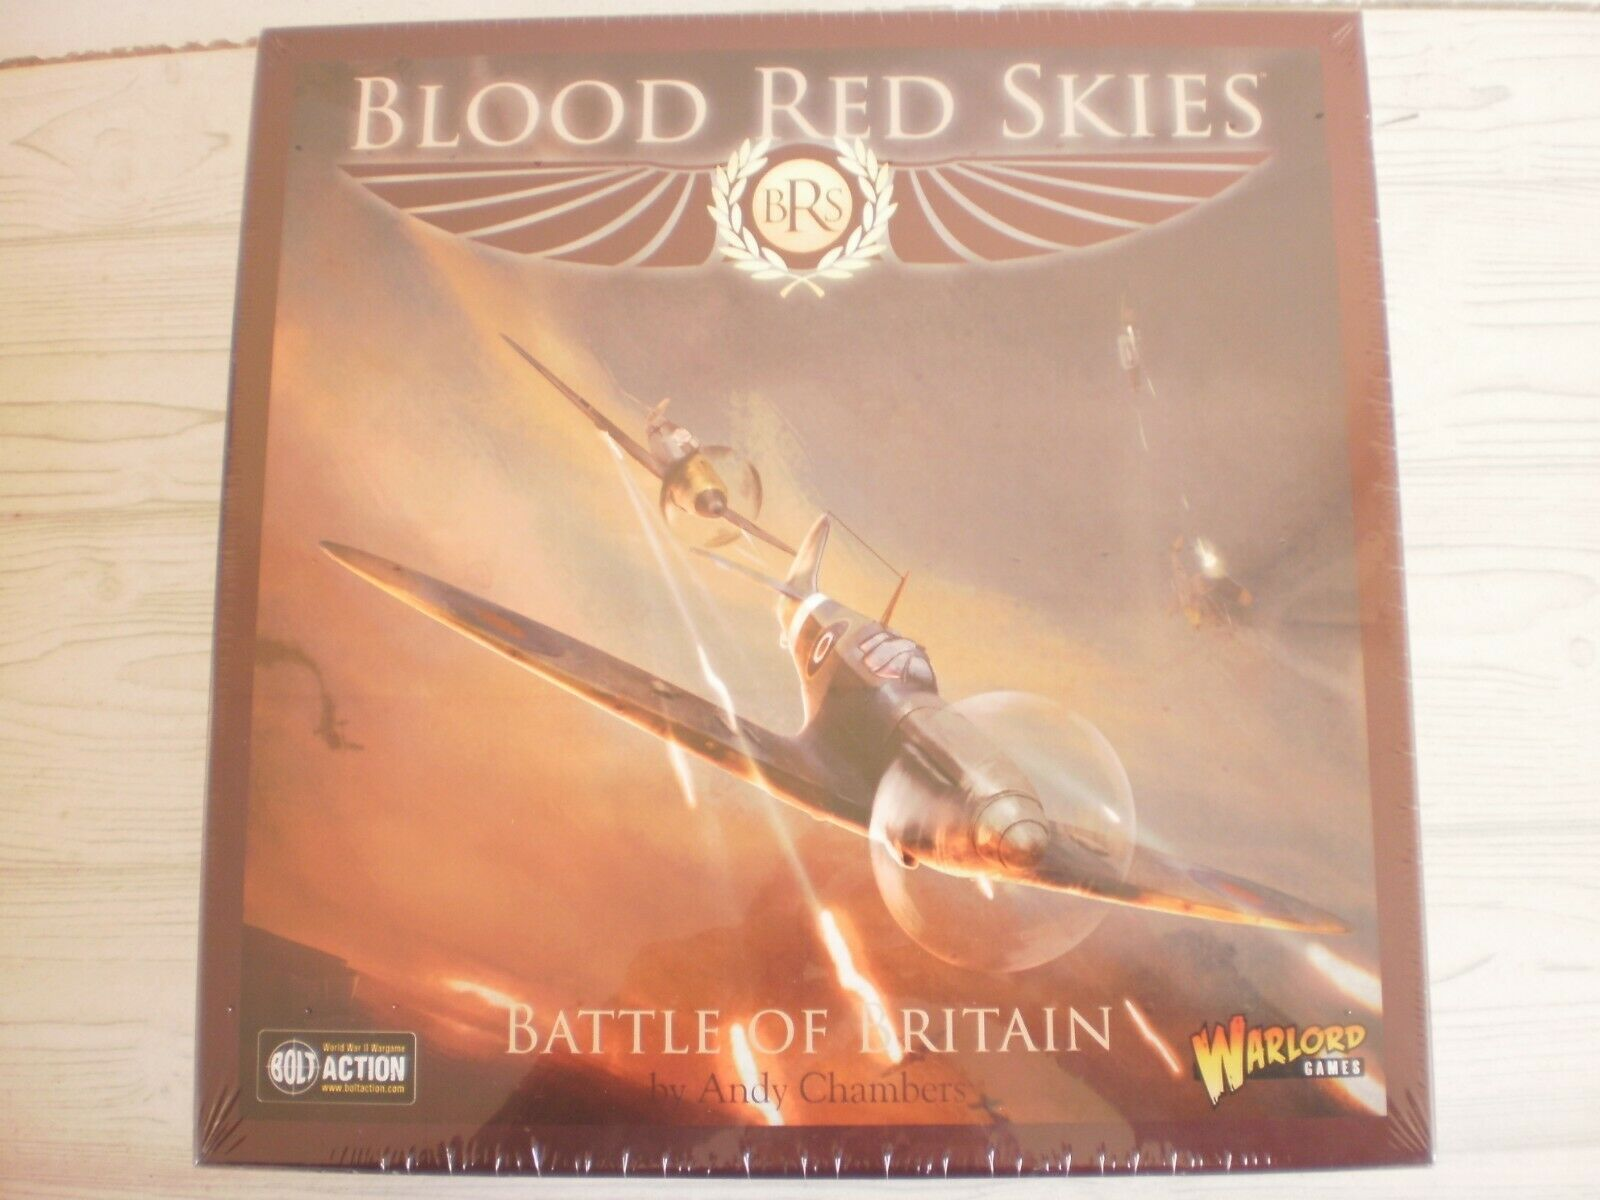 WARLORD - BLOOD RED SKIES - BATTLE OF BRITAIN (SEALED)